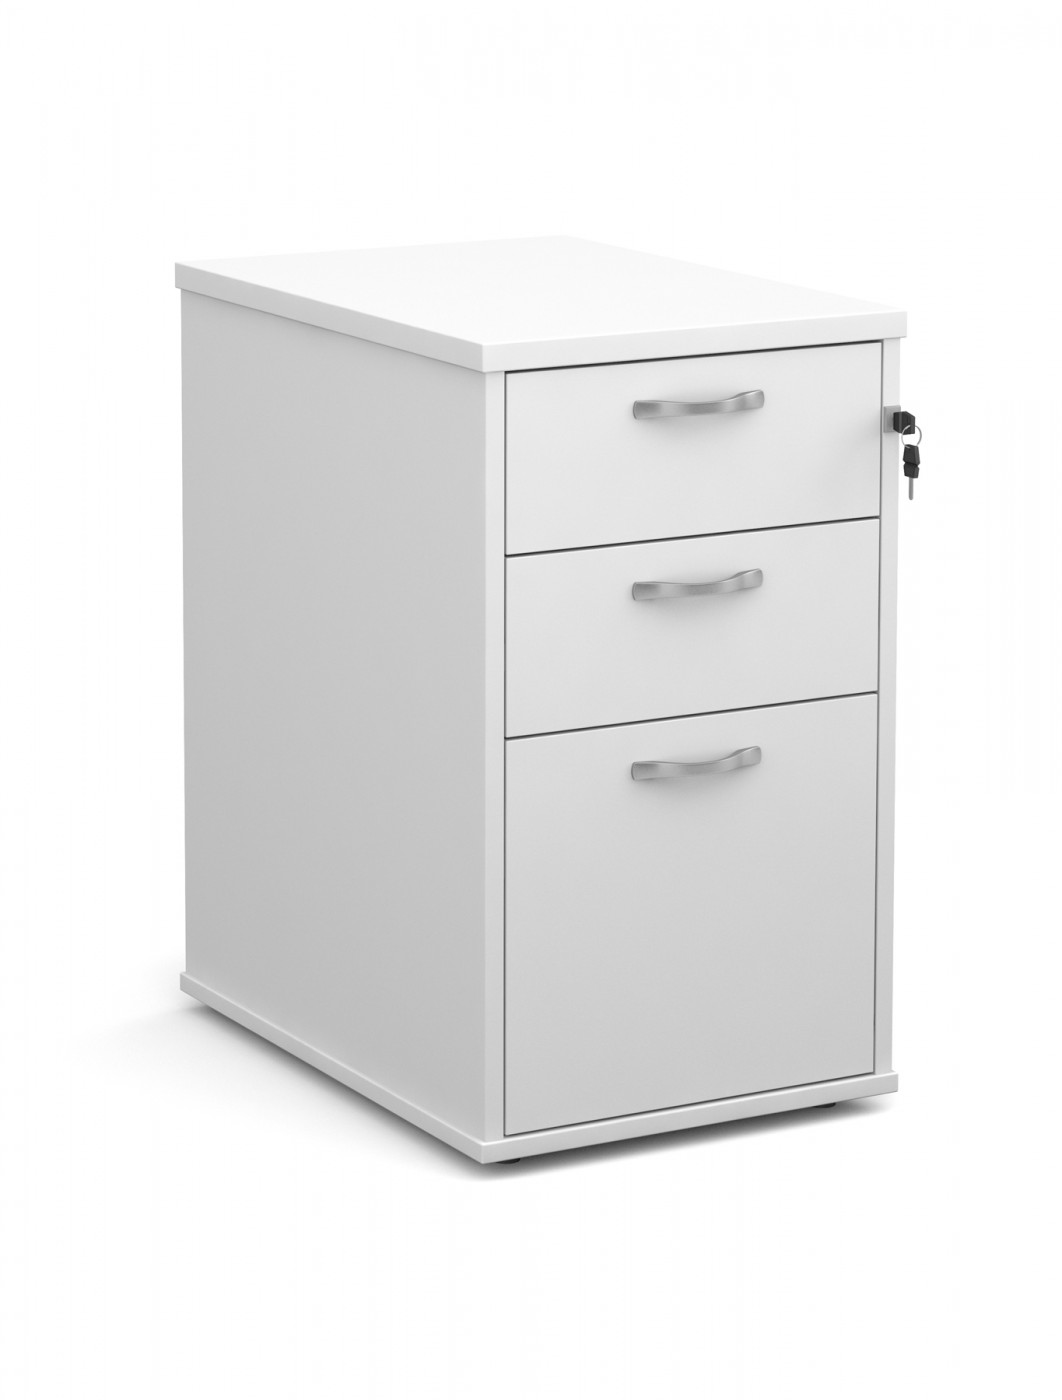 Dams Desk High Pedestal - 600mm Deep 3 Drawer Pedestal R25DH6